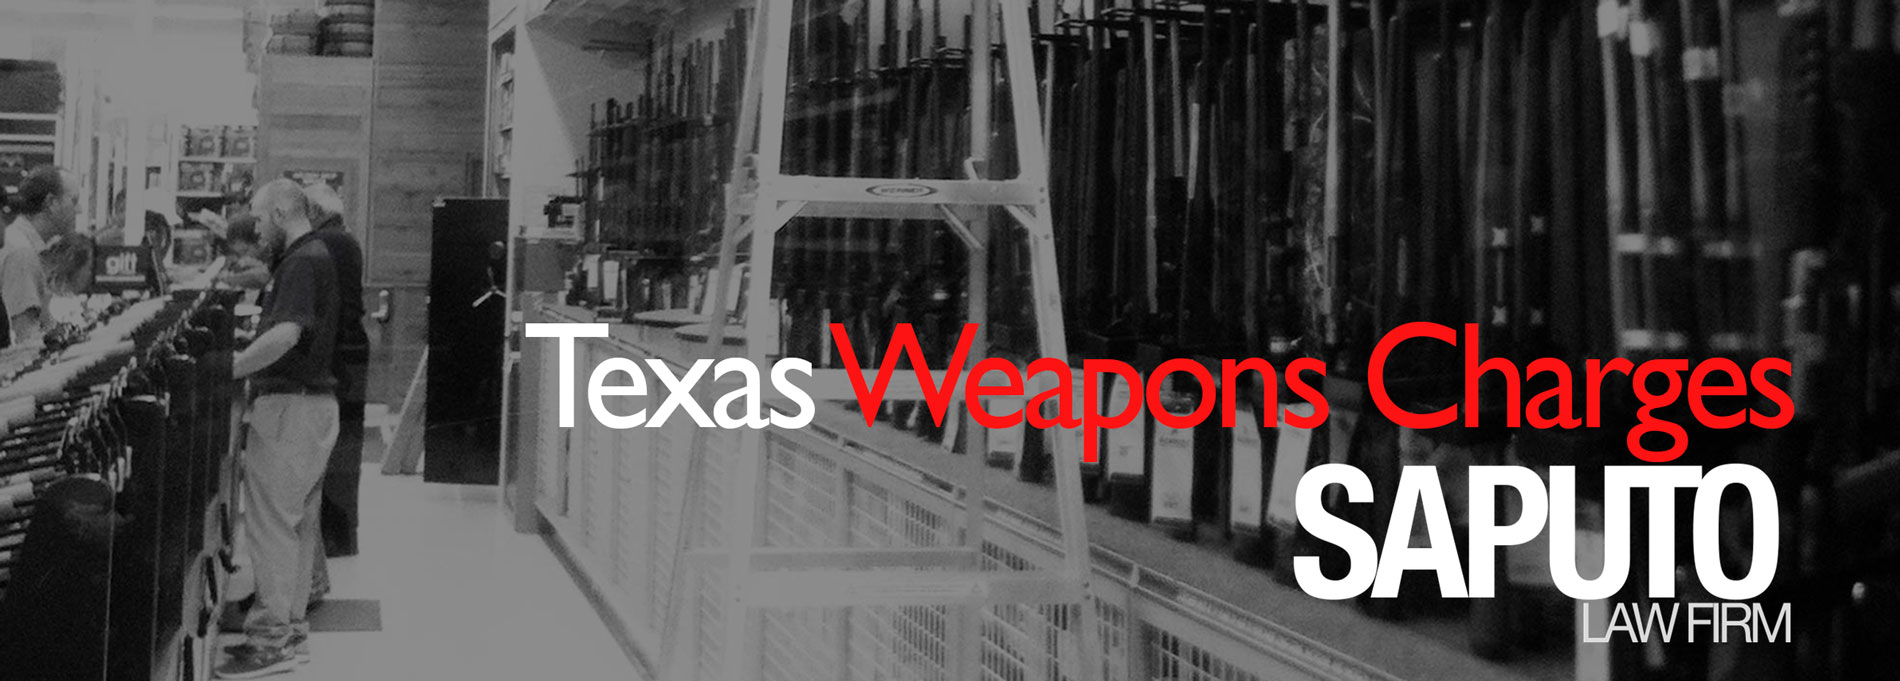 Texas Weapons Charges